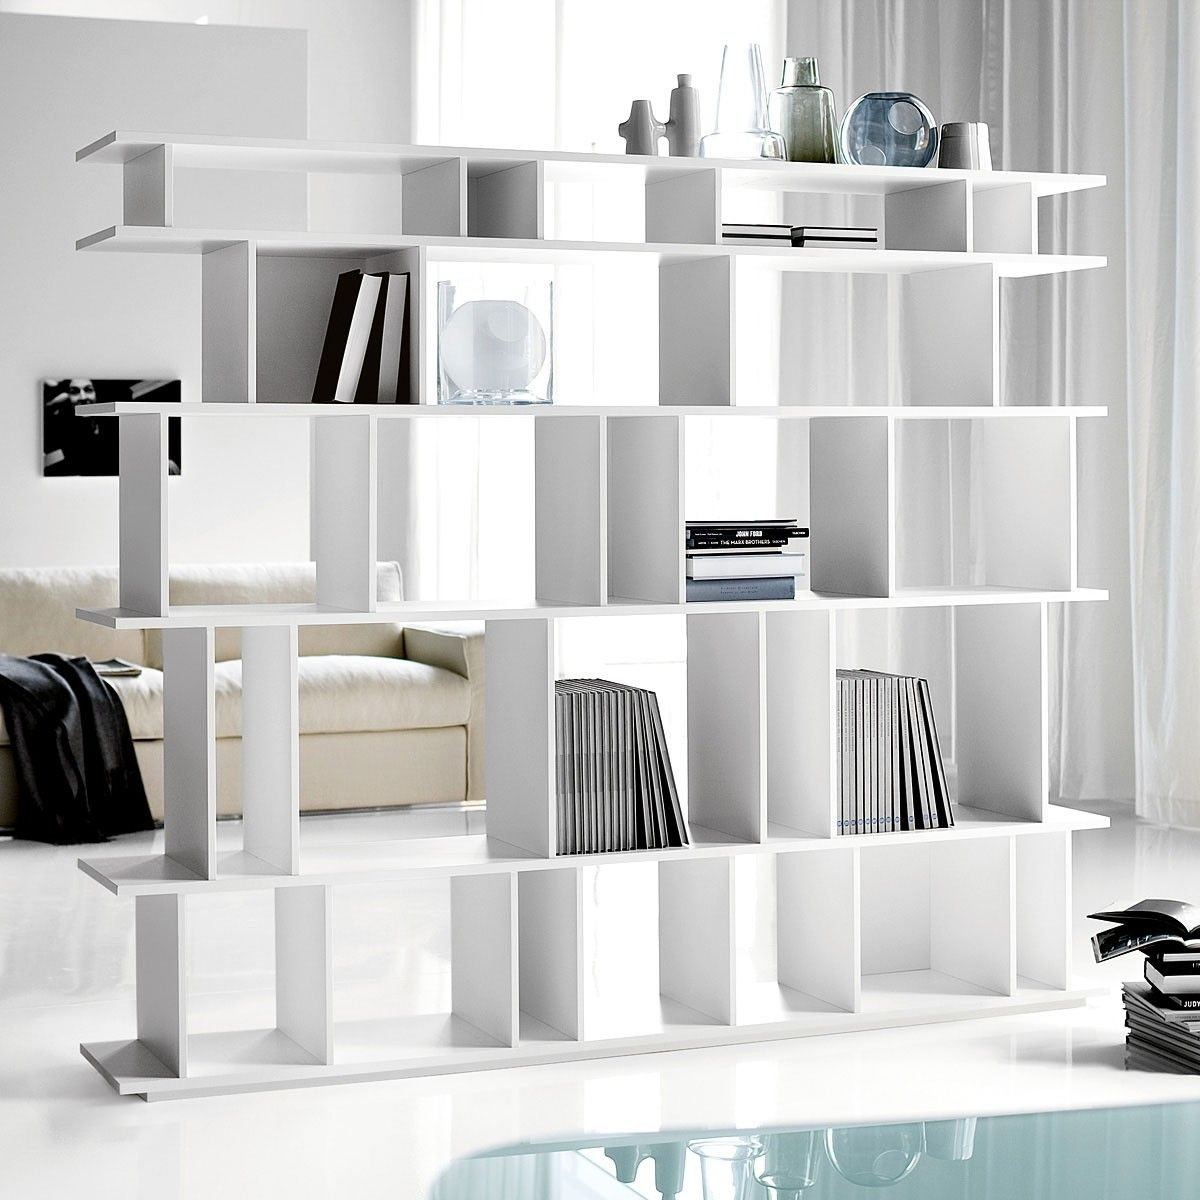 Modern room divider bookcase - Contemporary Bookshelf Room Divider Ideas For Bookshelf Room Divider Creative Home Decoration